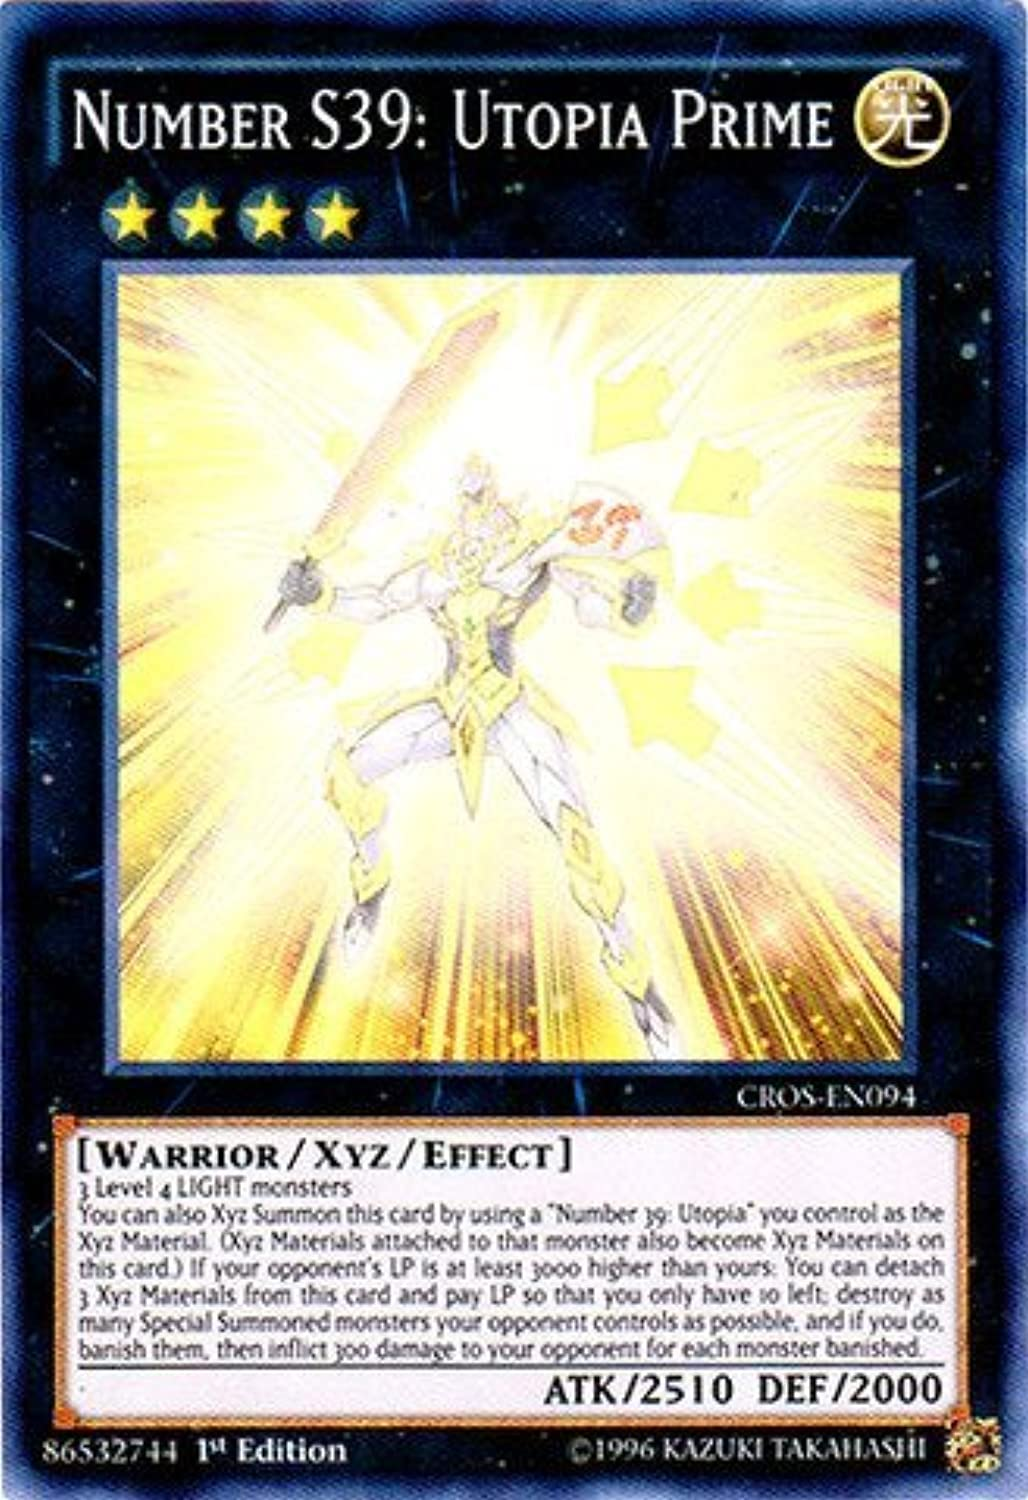 YuGiOh   Number S39  Utopia Prime (CpinkN094)  Crossed Souls  1st Edition  Super Rare by YuGiOh